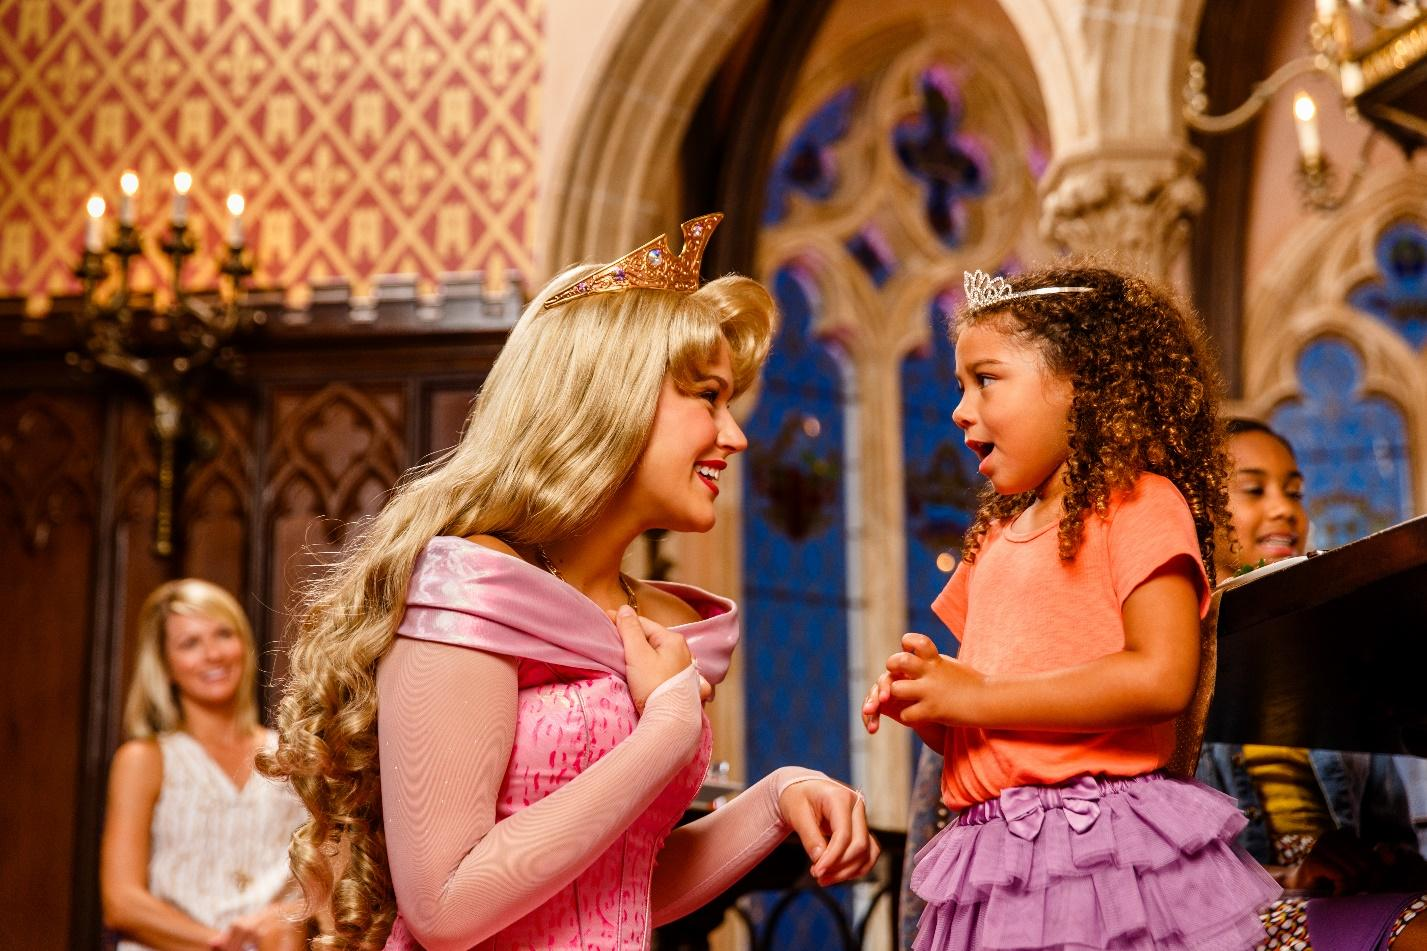 little girl is happily in shock meeting a Disney princess